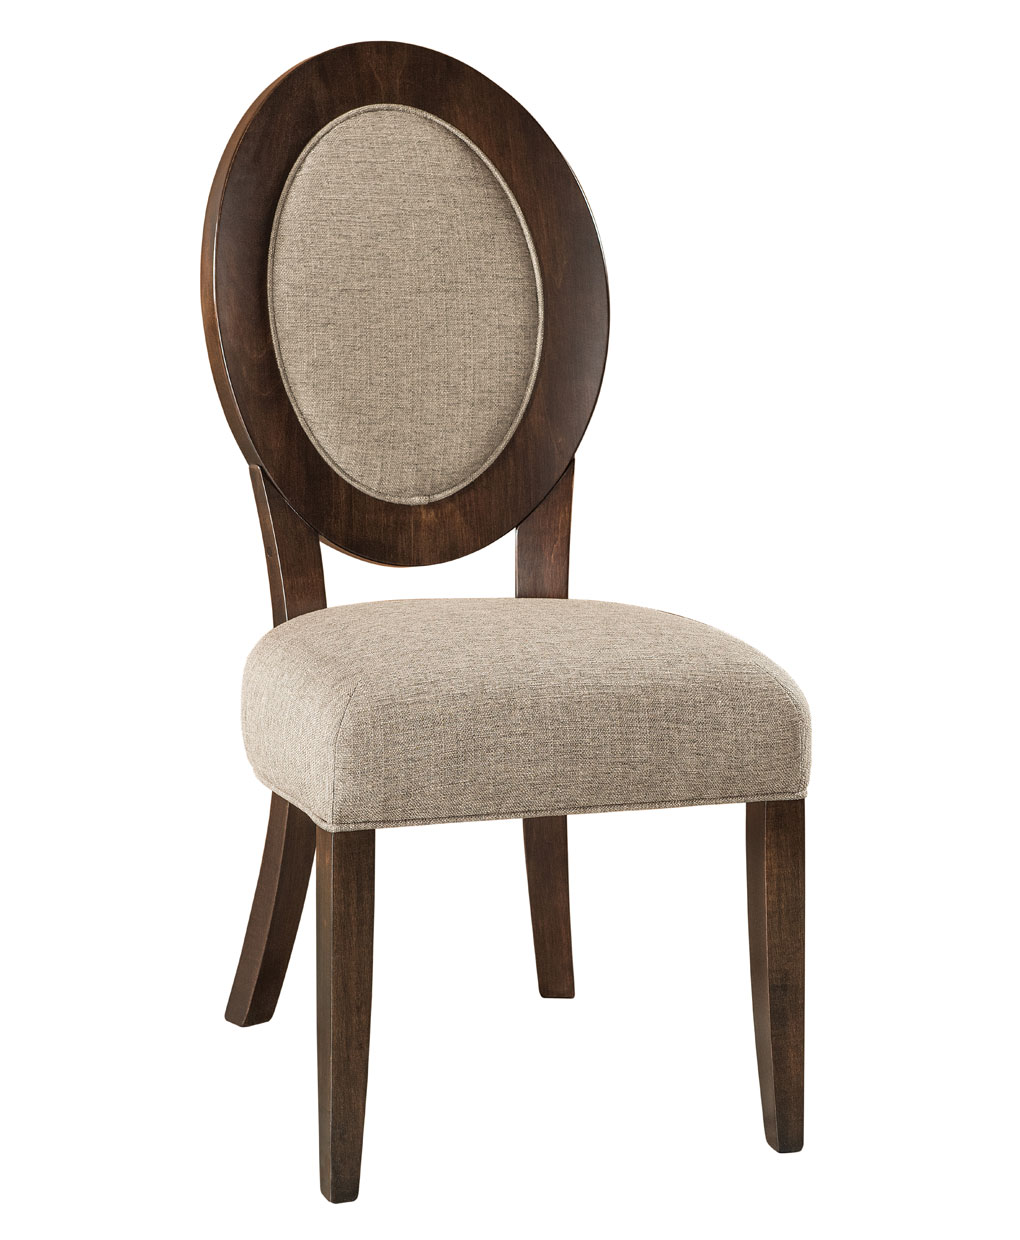 Roanoke Amish Dining Chair [Side / Brown Maple]